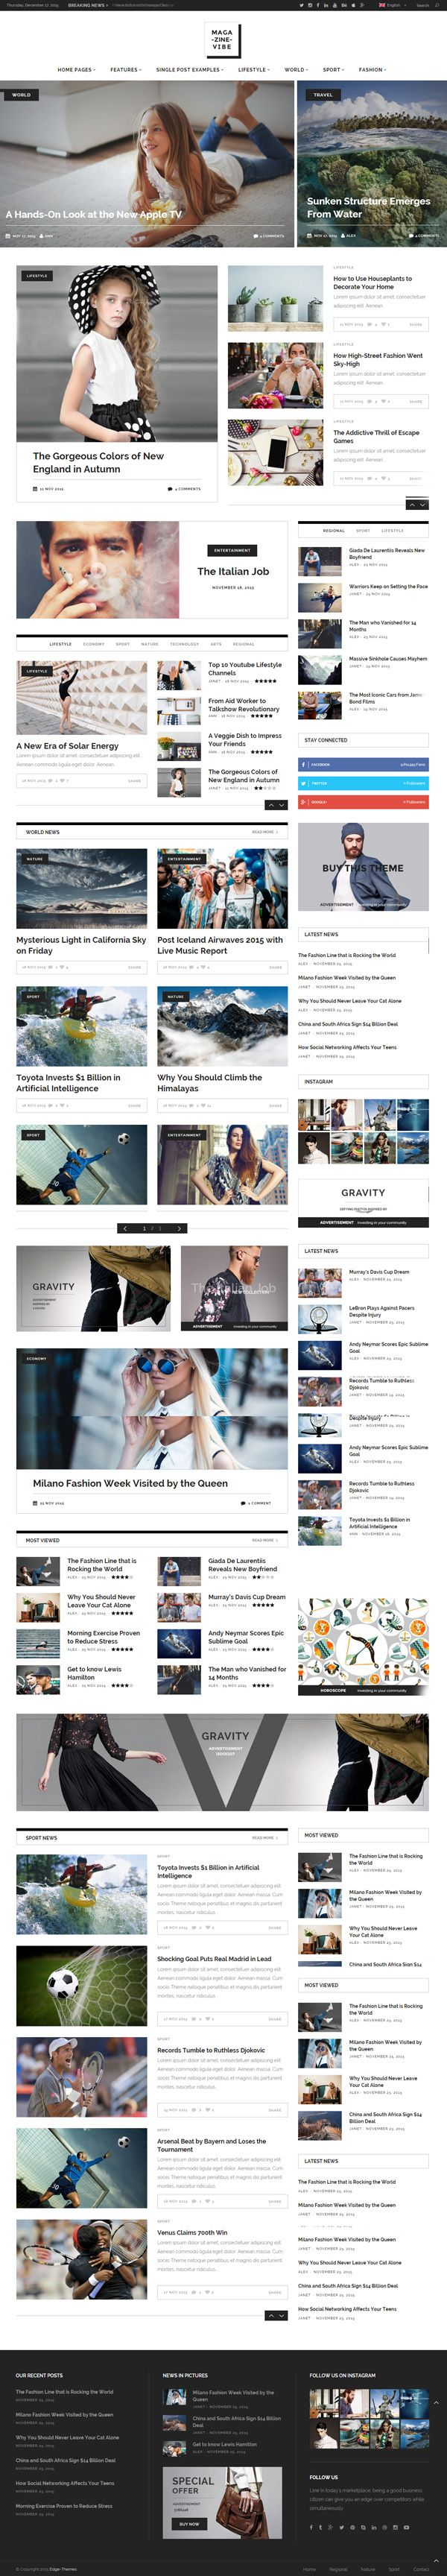 132 best EMAG images on Pinterest | Design websites, Site design and ...